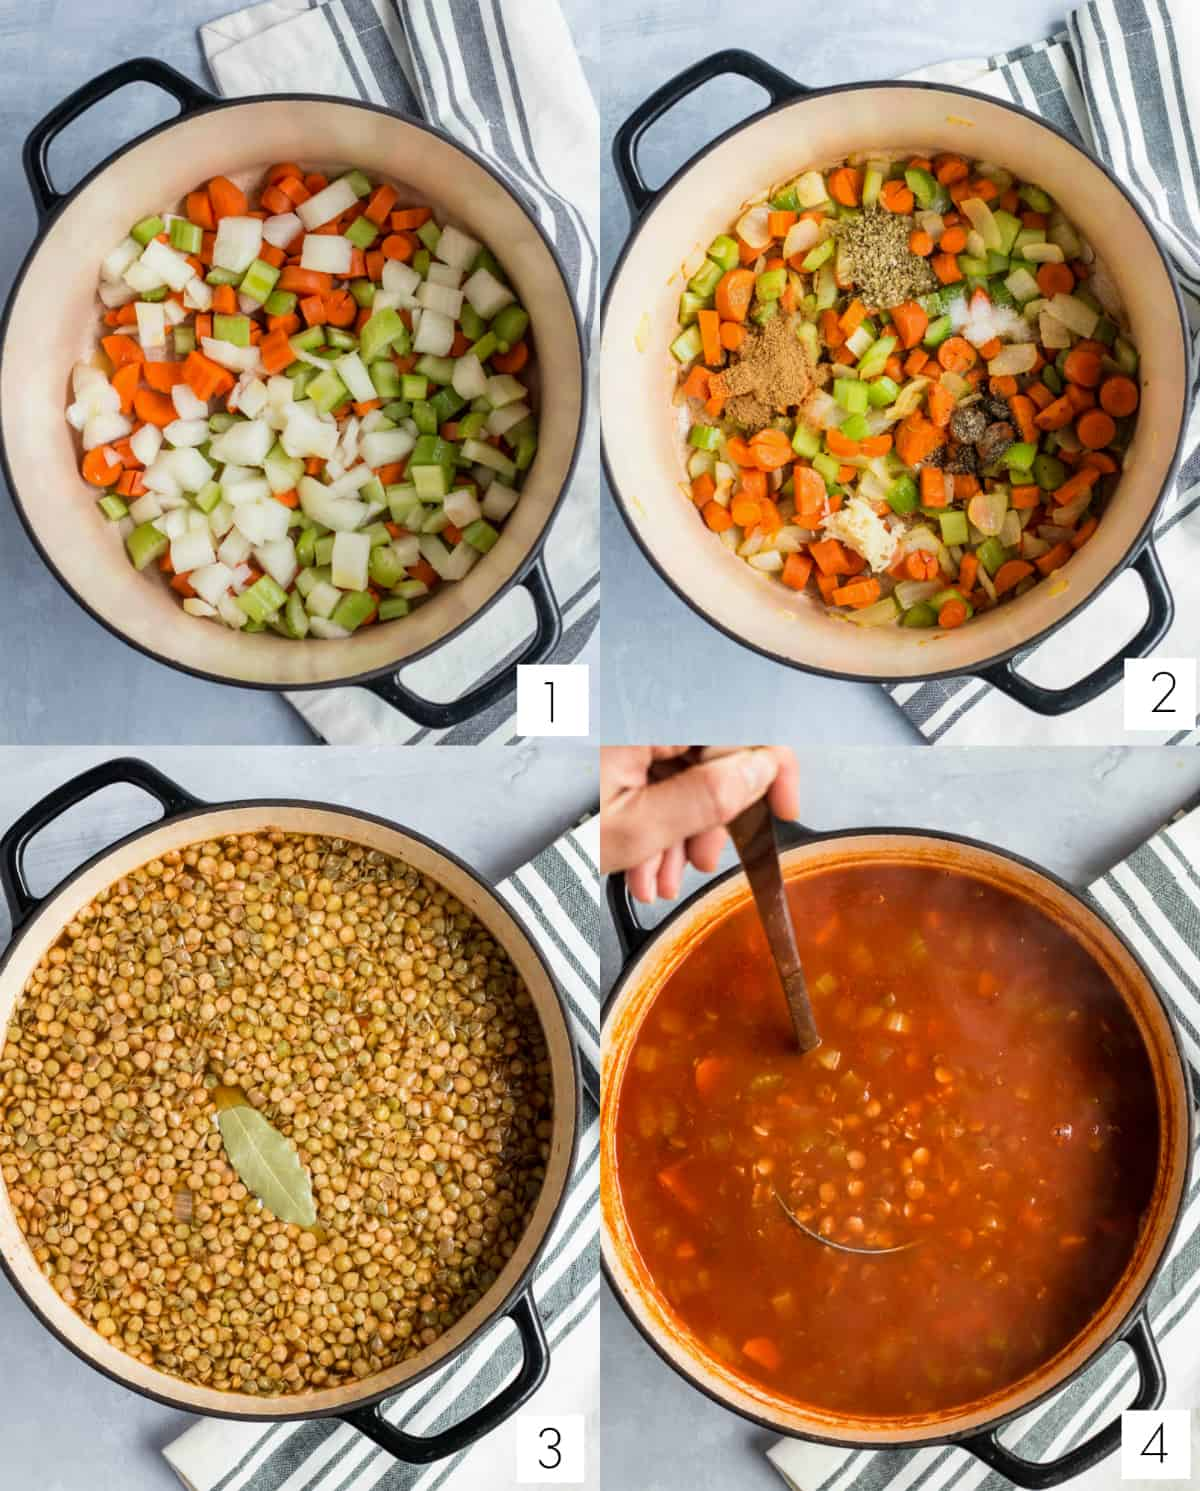 cooking all of the ingredients for lentil and kale soup in a stockpot